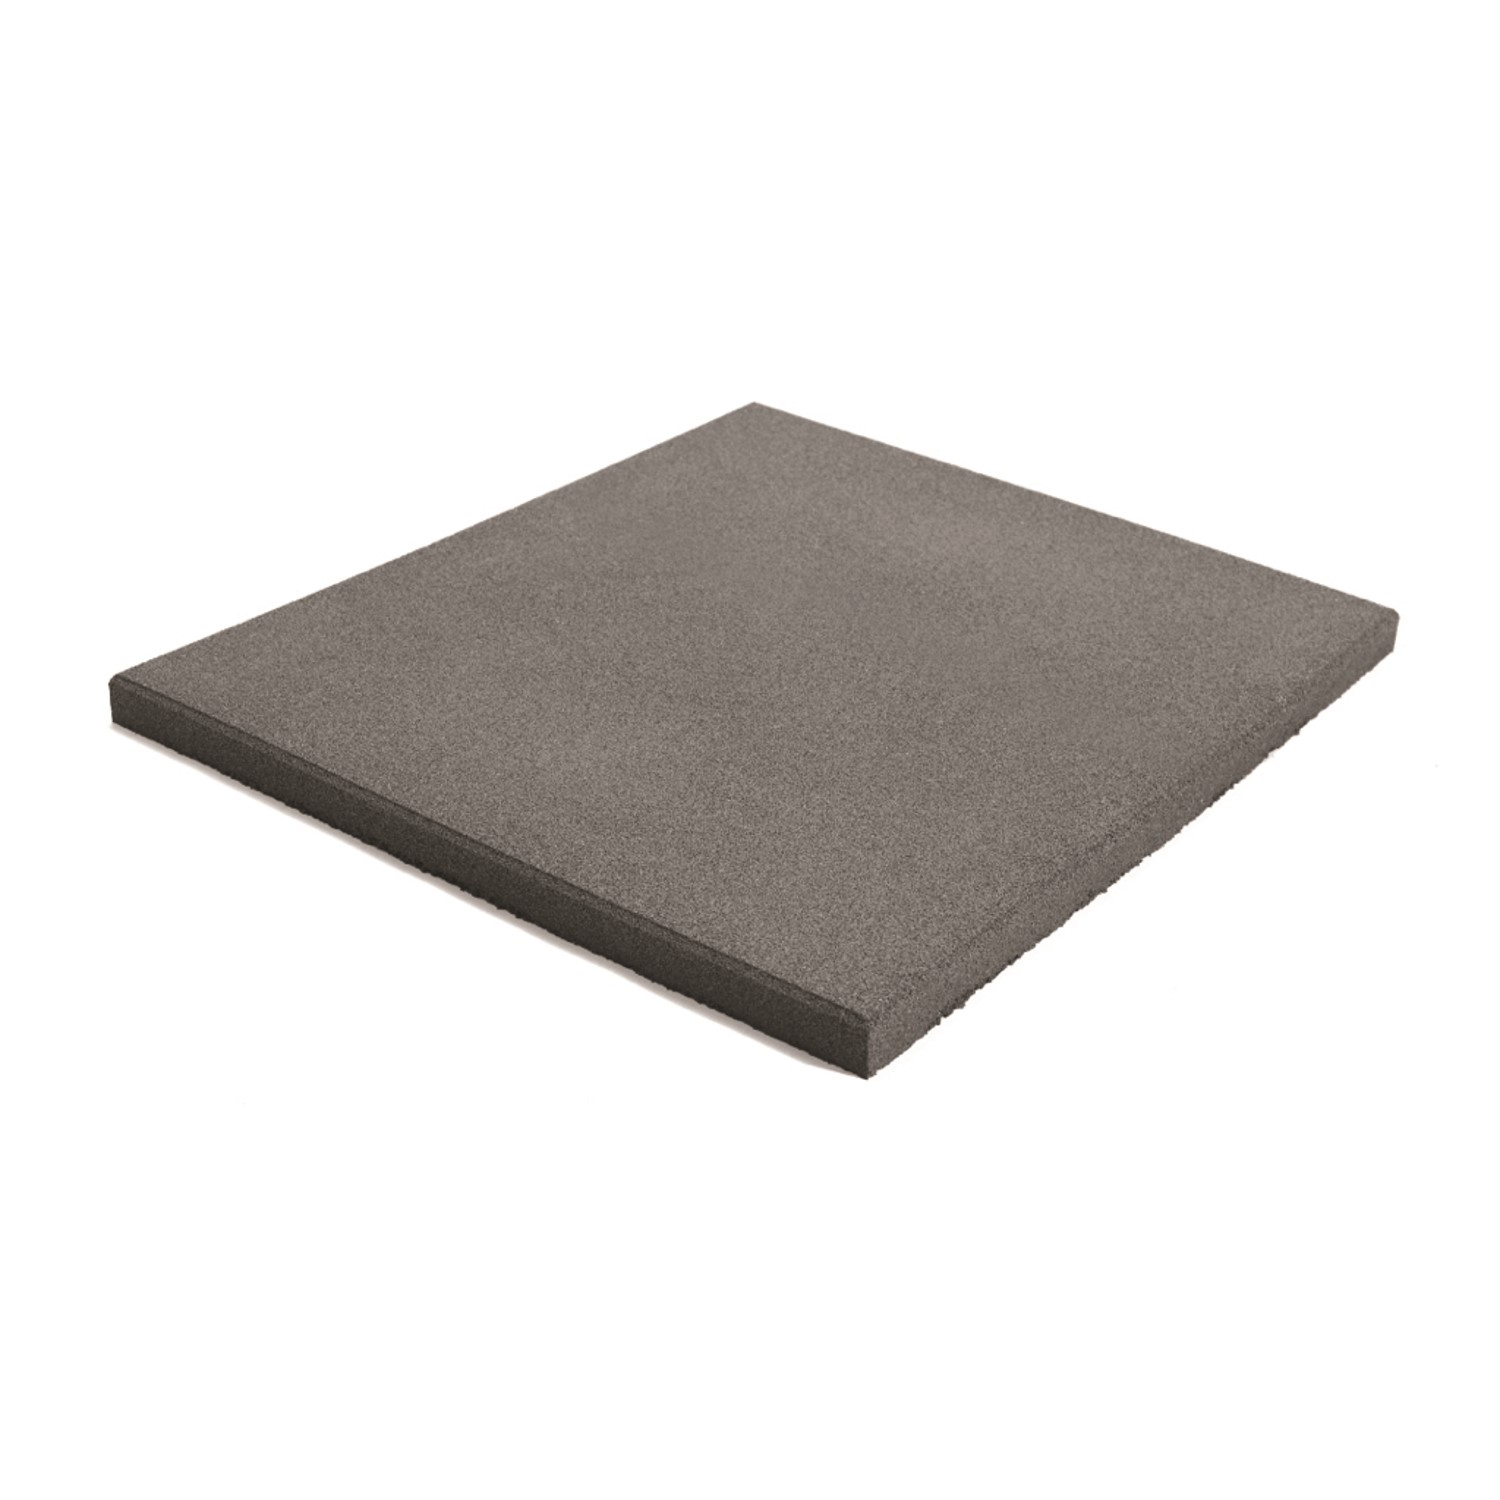 Jordan Activ Flooring (30mm) - Grey Corner